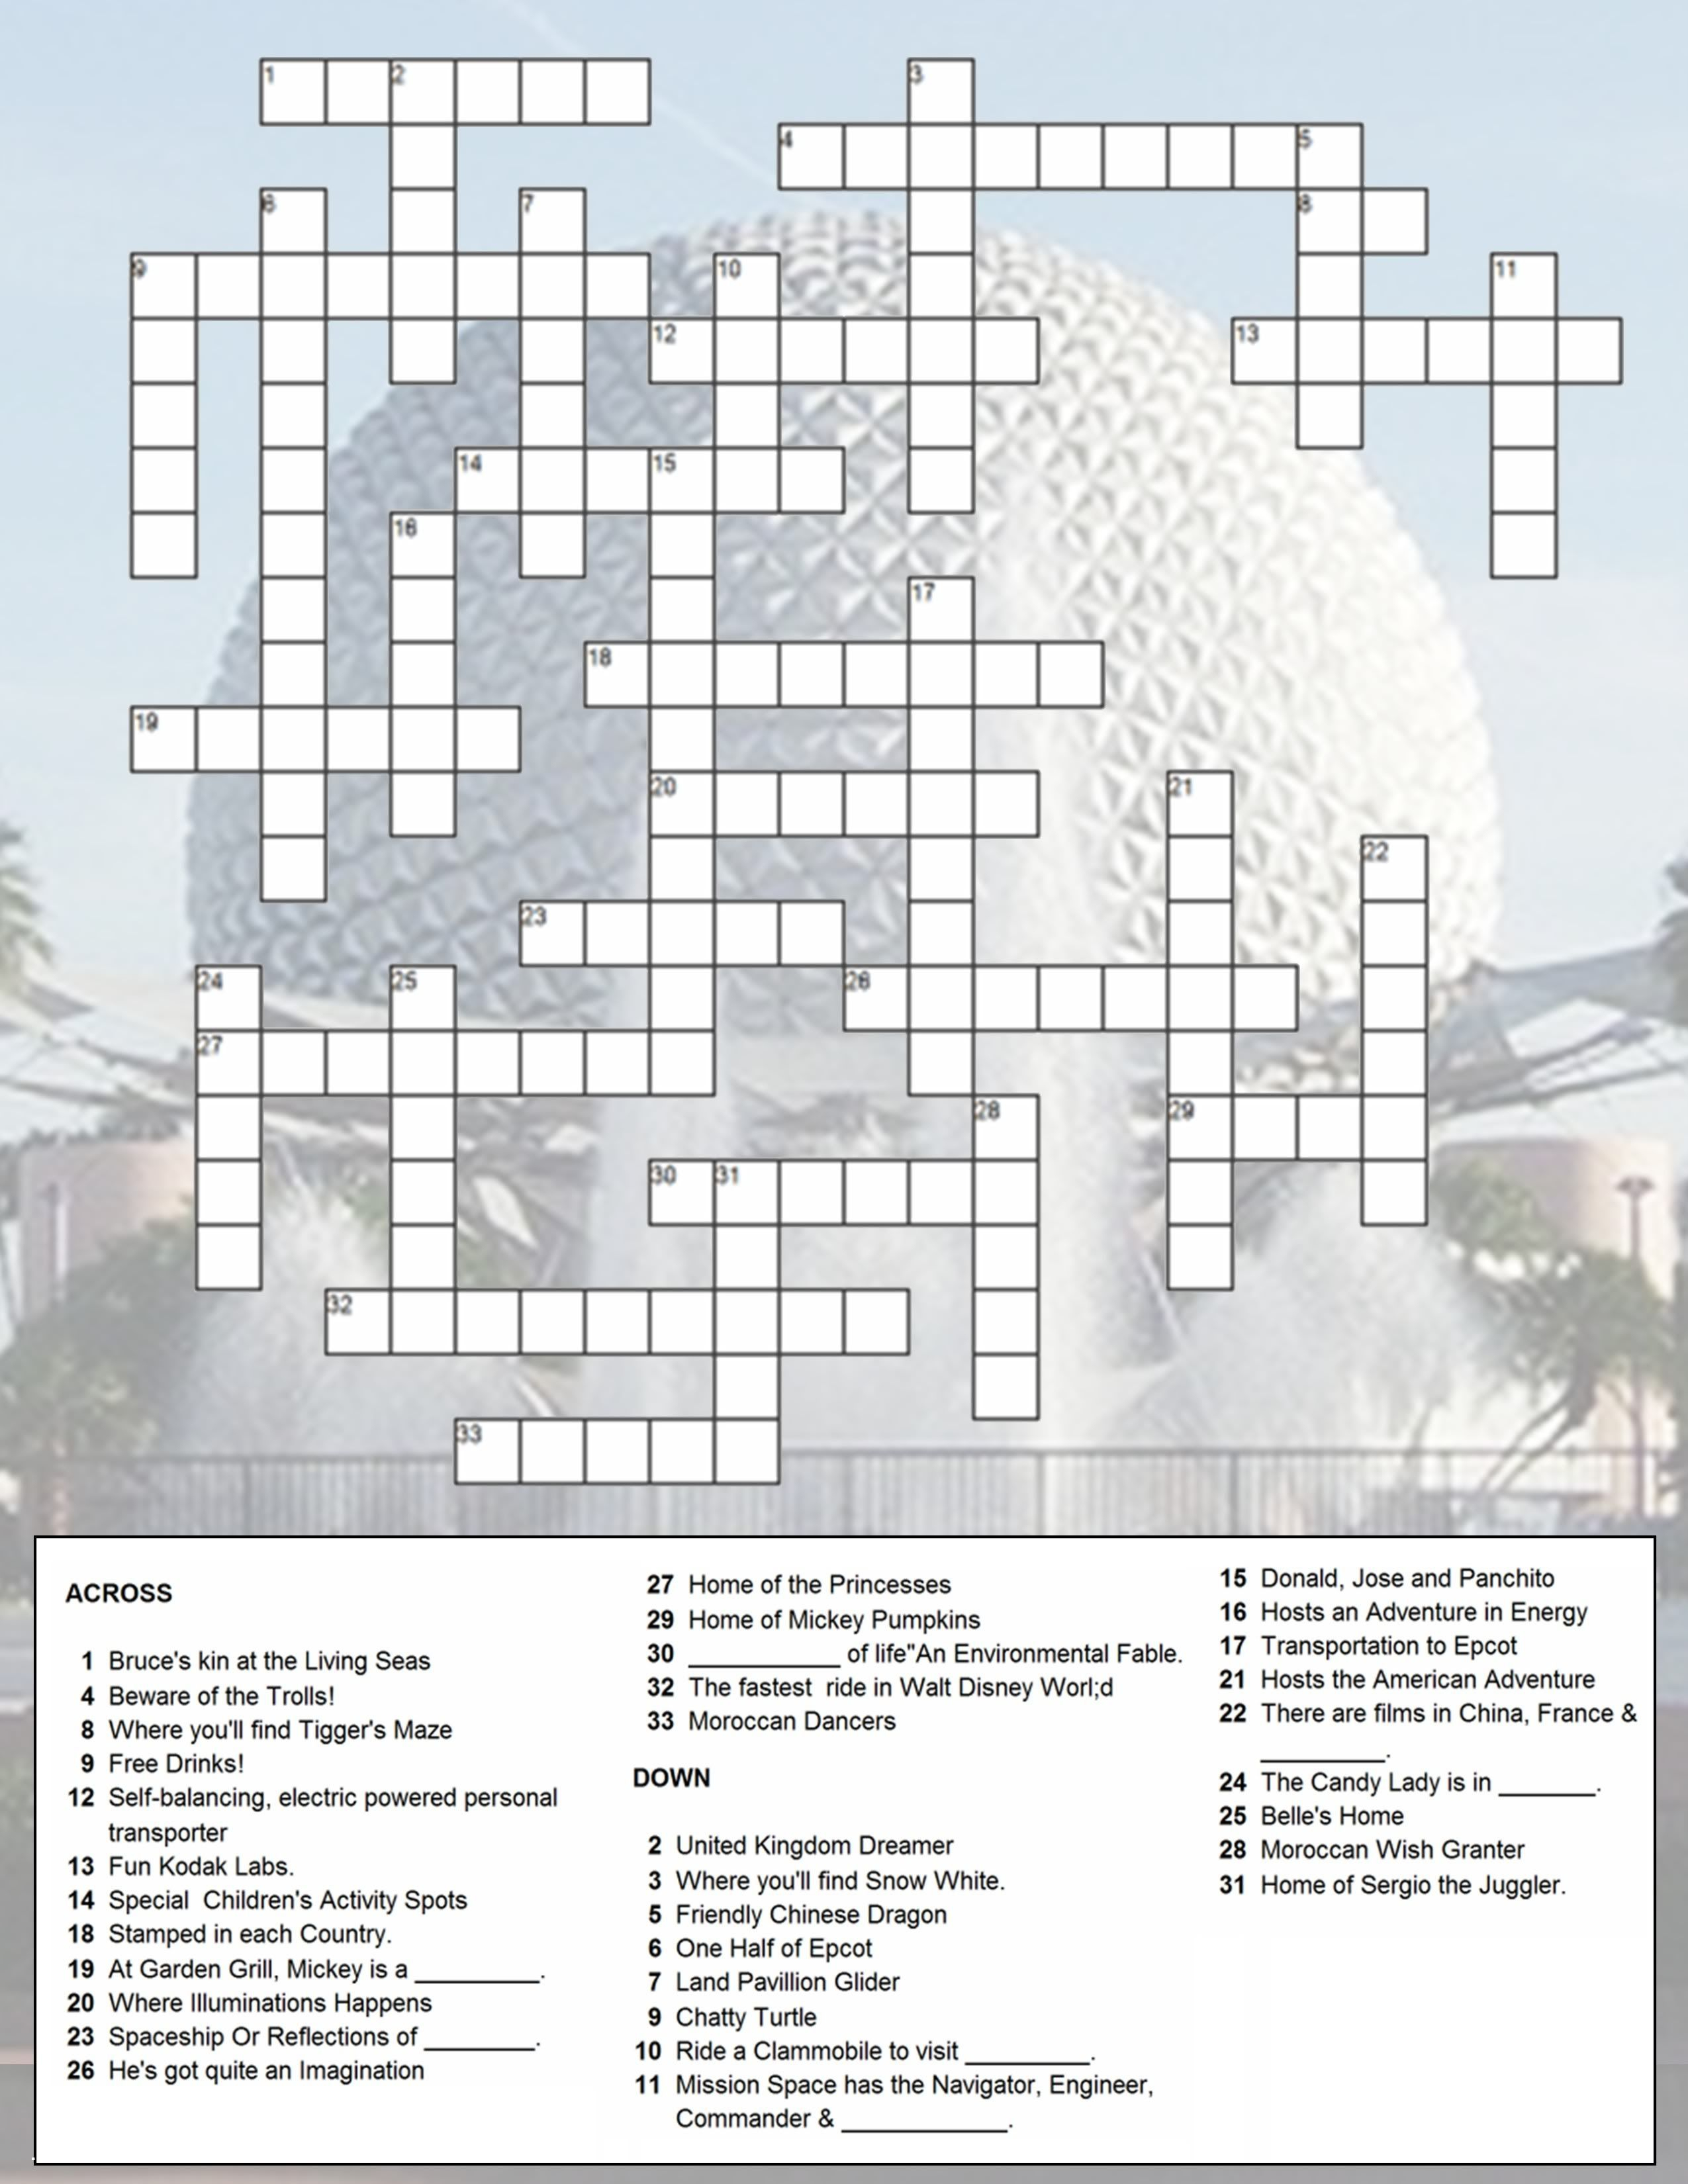 Epcot Crossword Puzzle | Just Because You Have A Fast Passdoesn't - Printable Crossword Disney